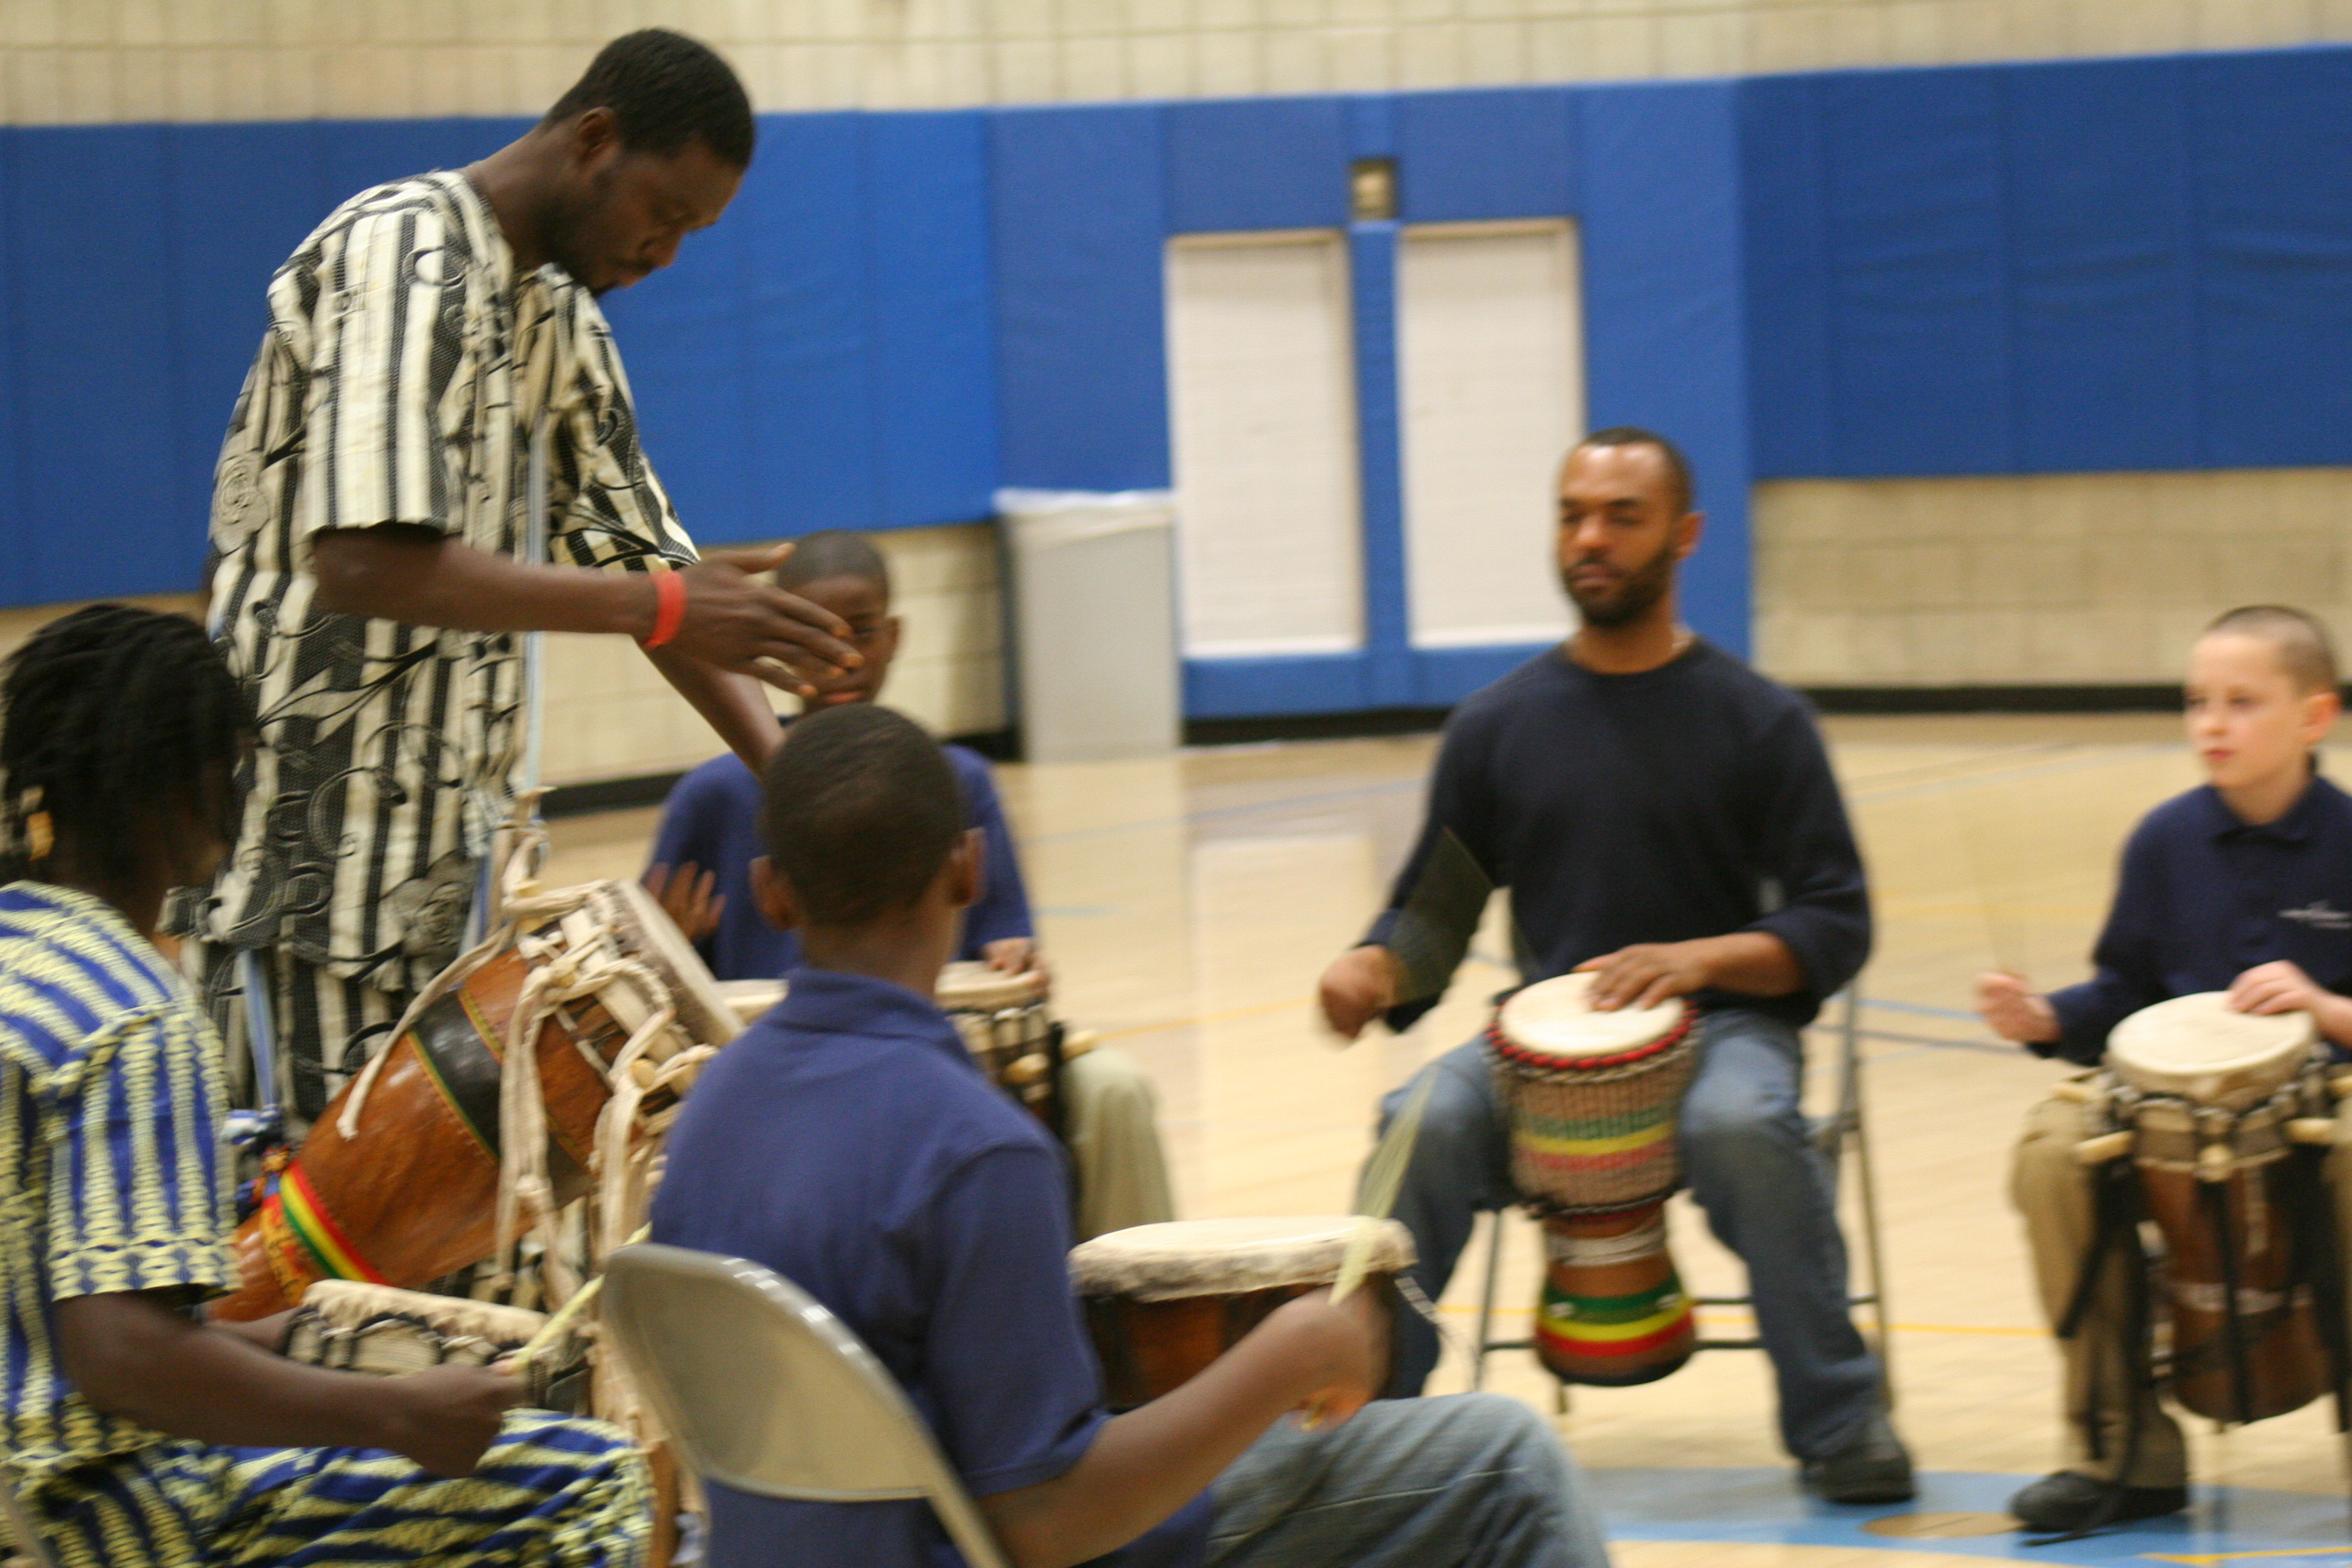 Moustapha leads the Young Achiever School students in a rhythm.